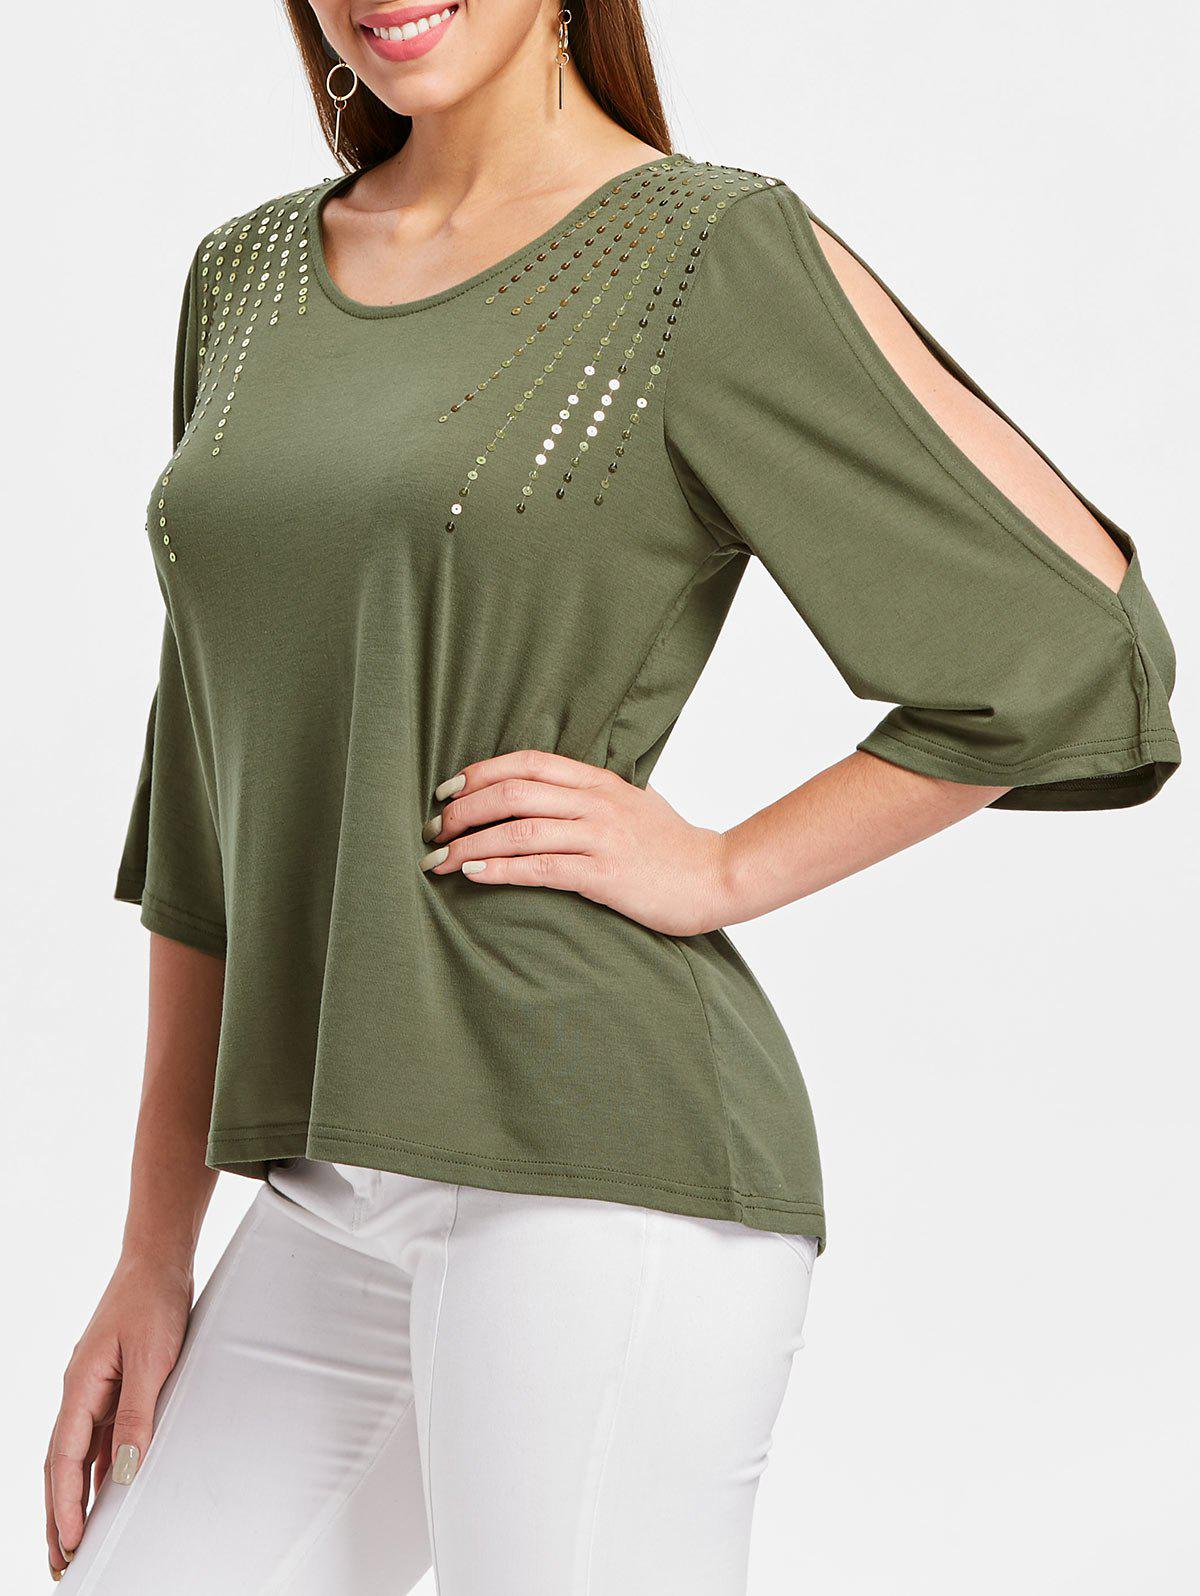 Discount Sequin Embellished Cut Out Sleeve T-shirt